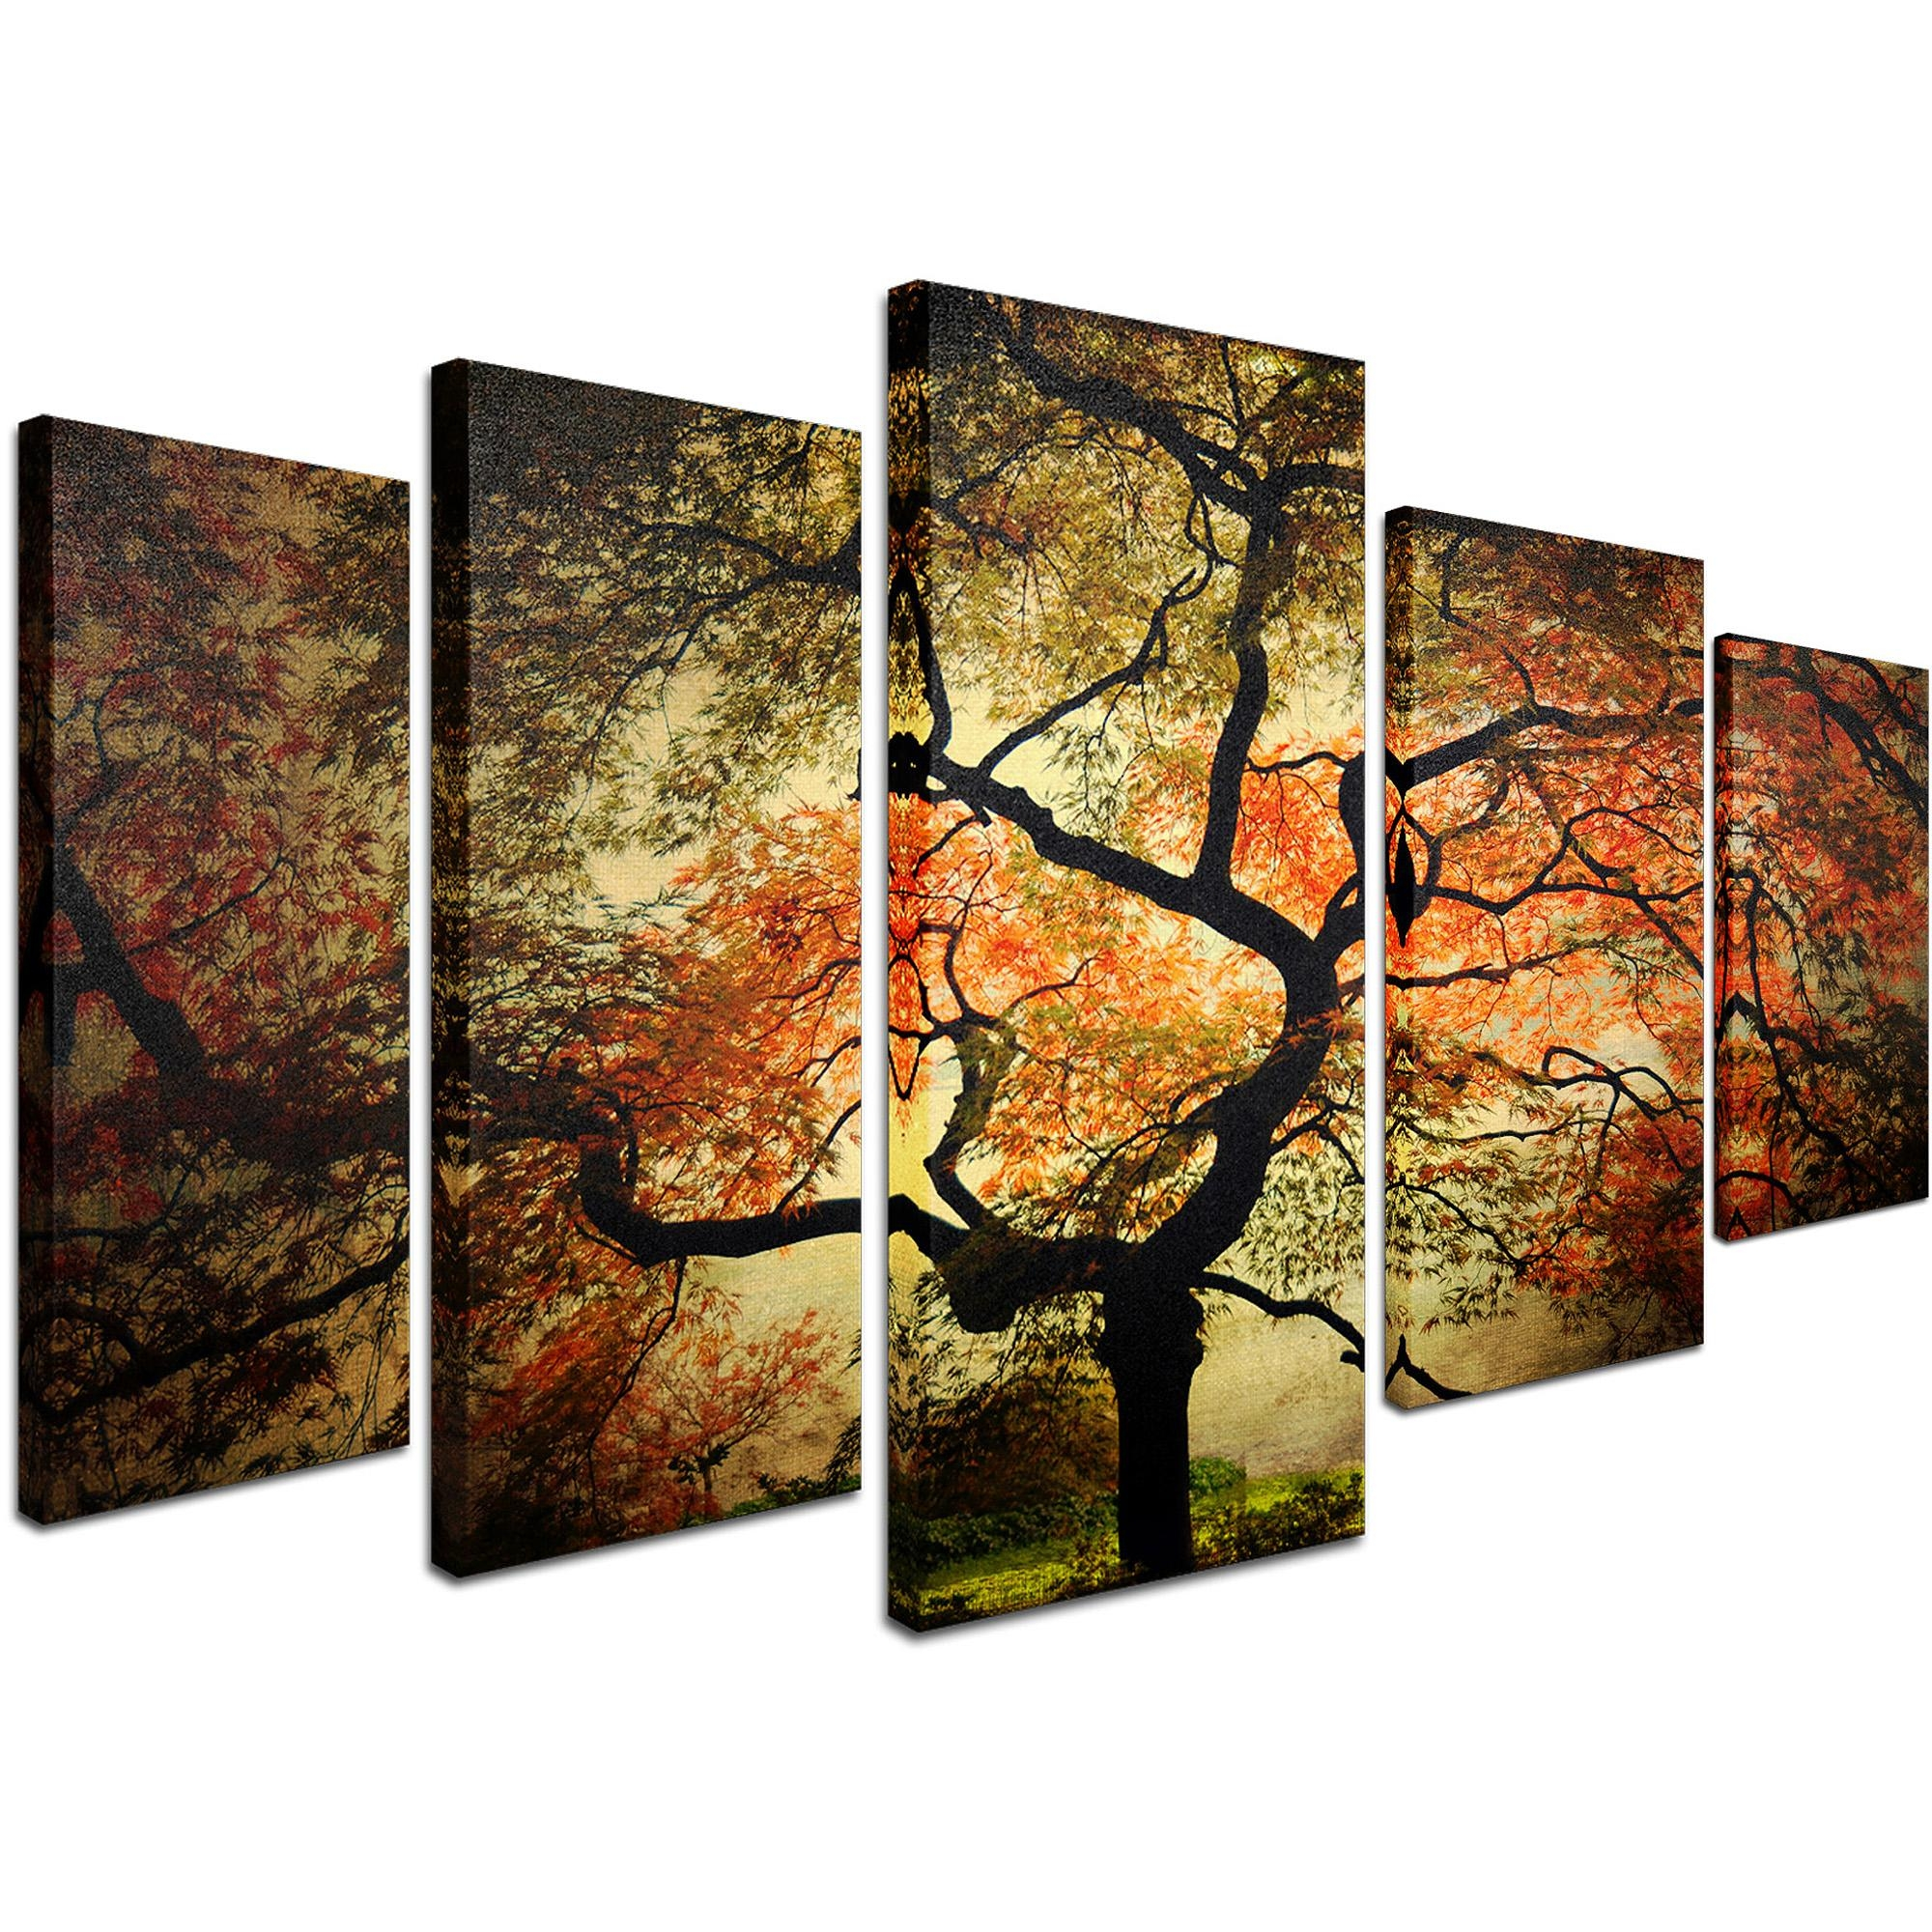 "Trademark Fine Art ""japanese"" Canvas Artphilippe Sainte Laudy In Wall Art Sets For Living Room (Image 9 of 20)"